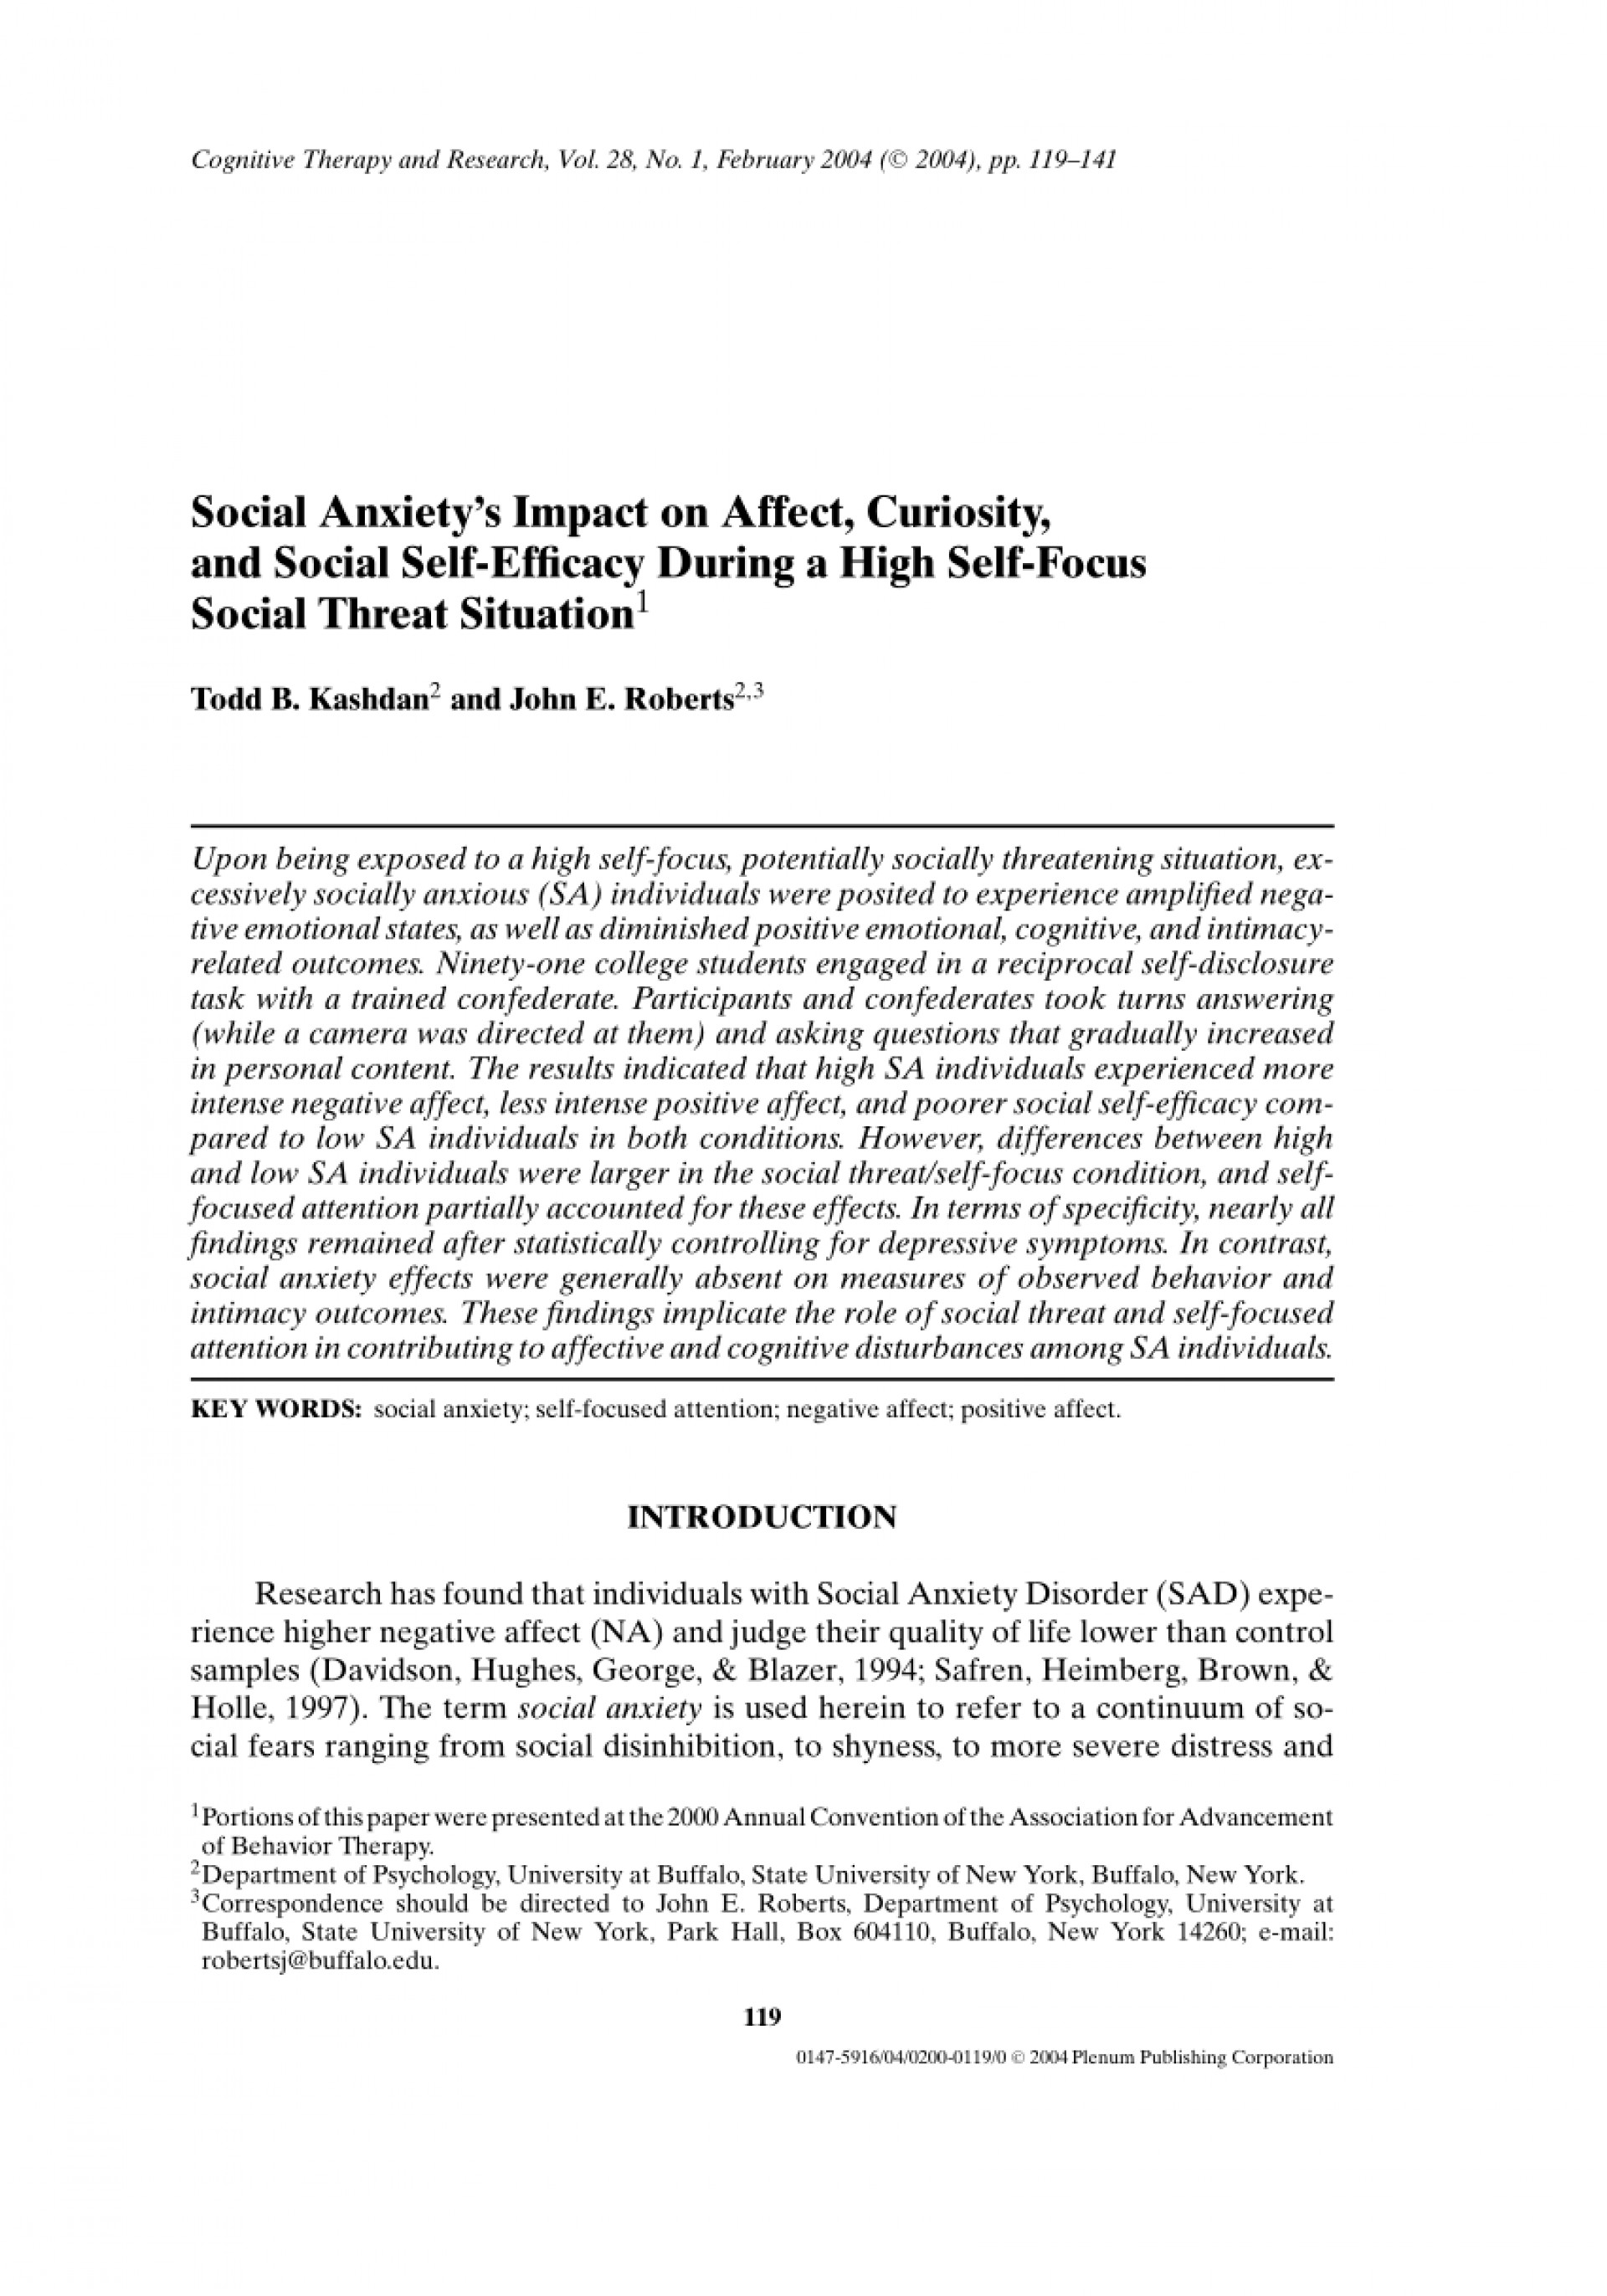 005 Research Paper Psychology On Social Anxiety Disorder Staggering 1920